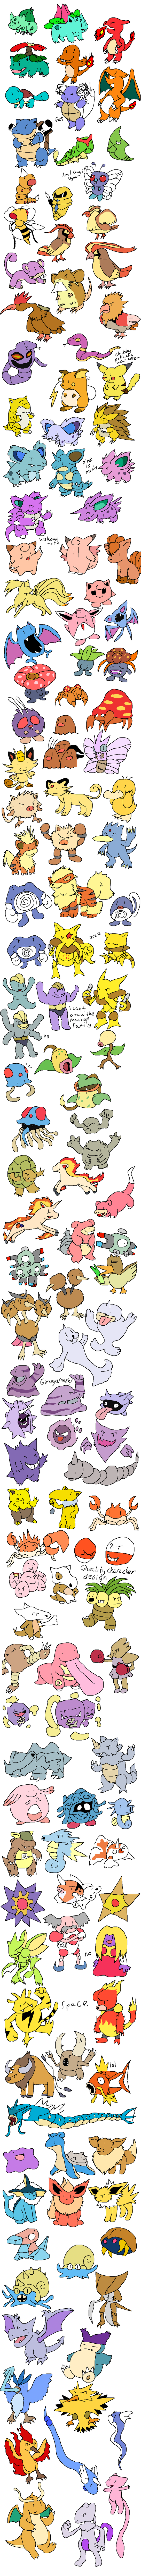 Gotta Draw Em All - Gen 1 by Inika-Hero